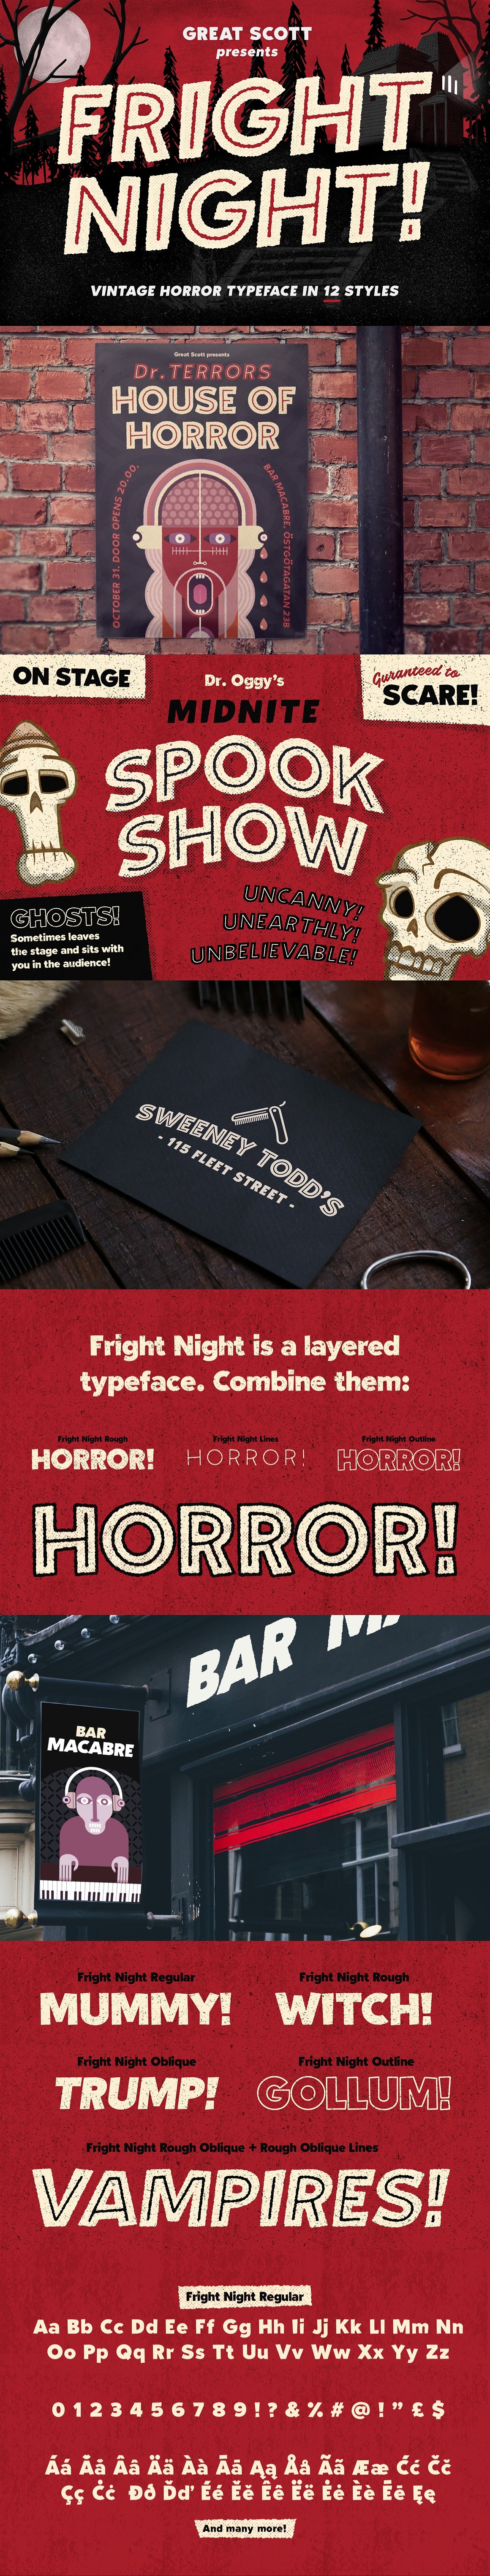 the perfect halloween font by great scott - Good Halloween Font